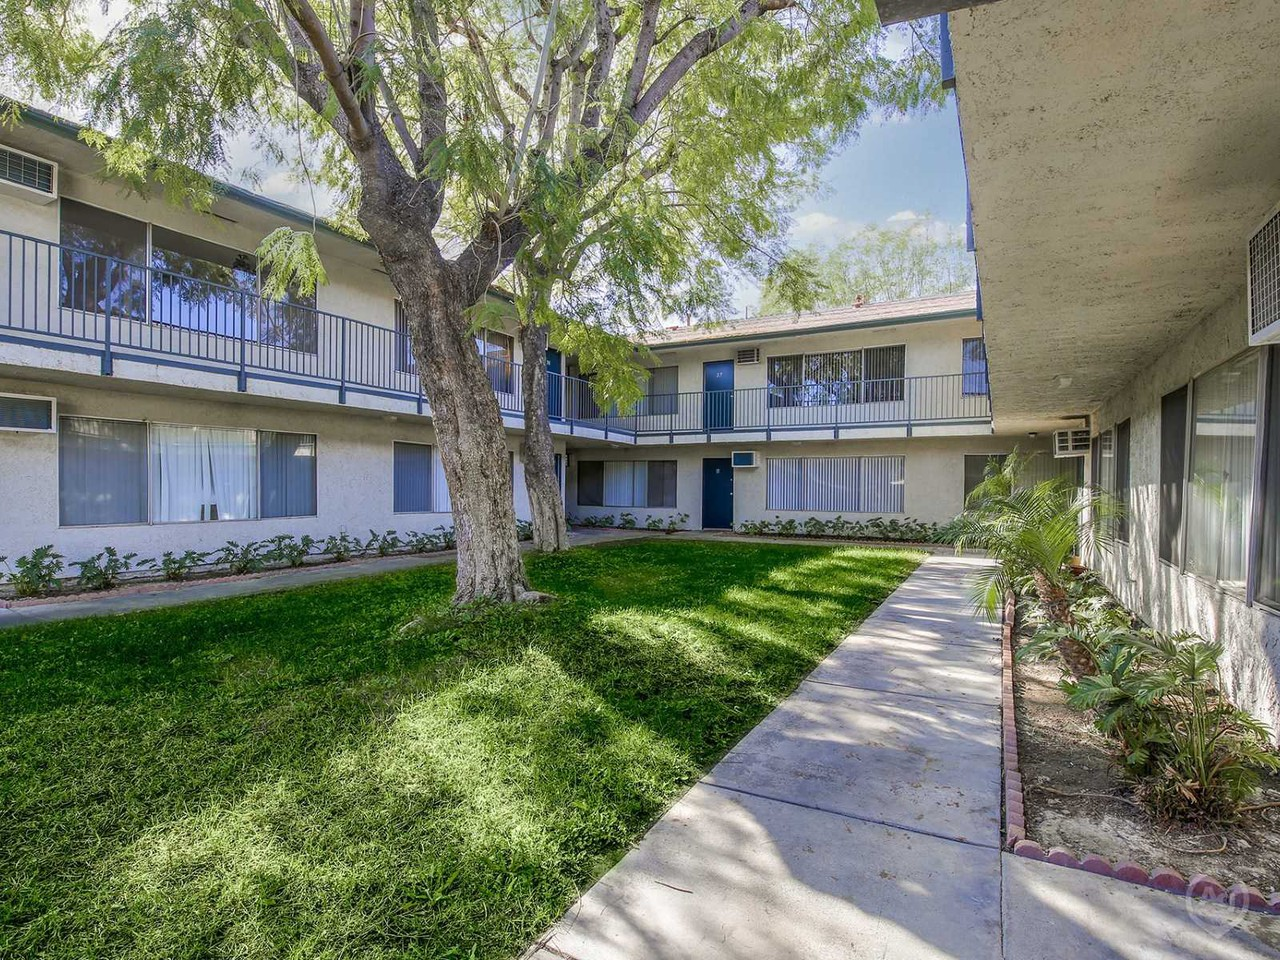 apartments in pad hotpads ca st a large street lincoln apt carlsbad